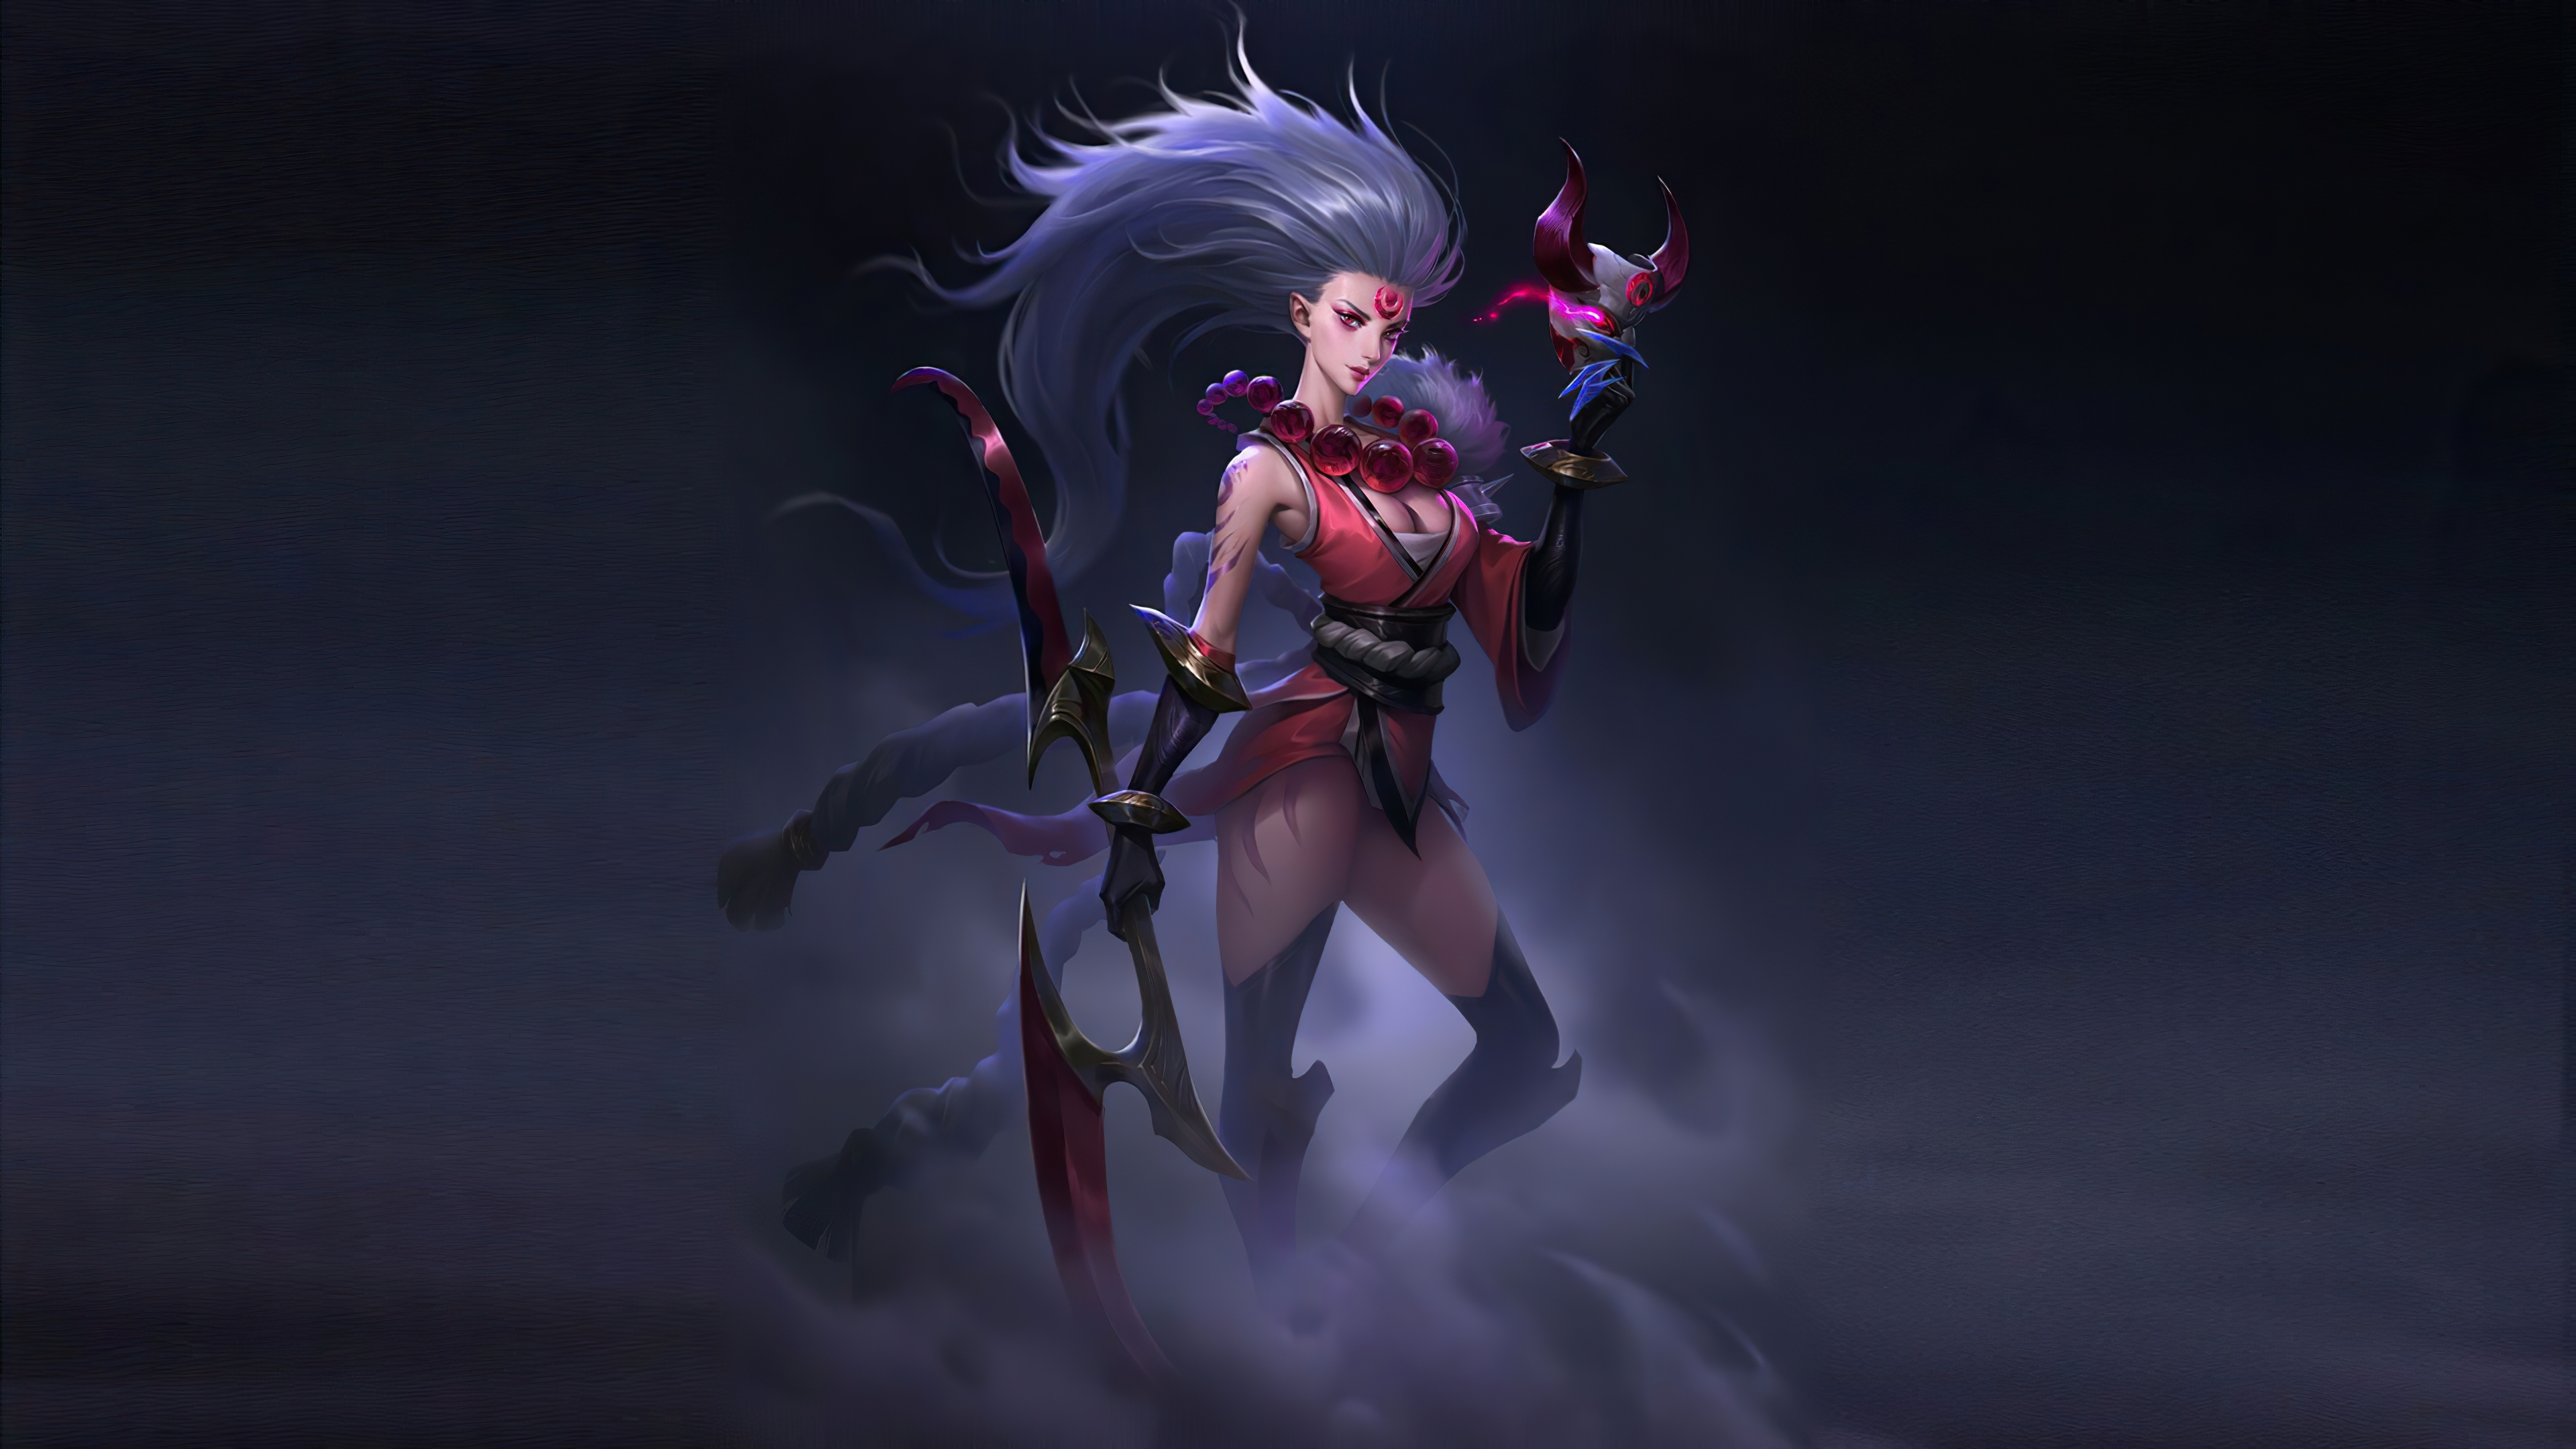 640x960 Lol Blood Moon Diana Iphone 4 Iphone 4s Wallpaper Hd Games 4k Wallpapers Images Photos And Background